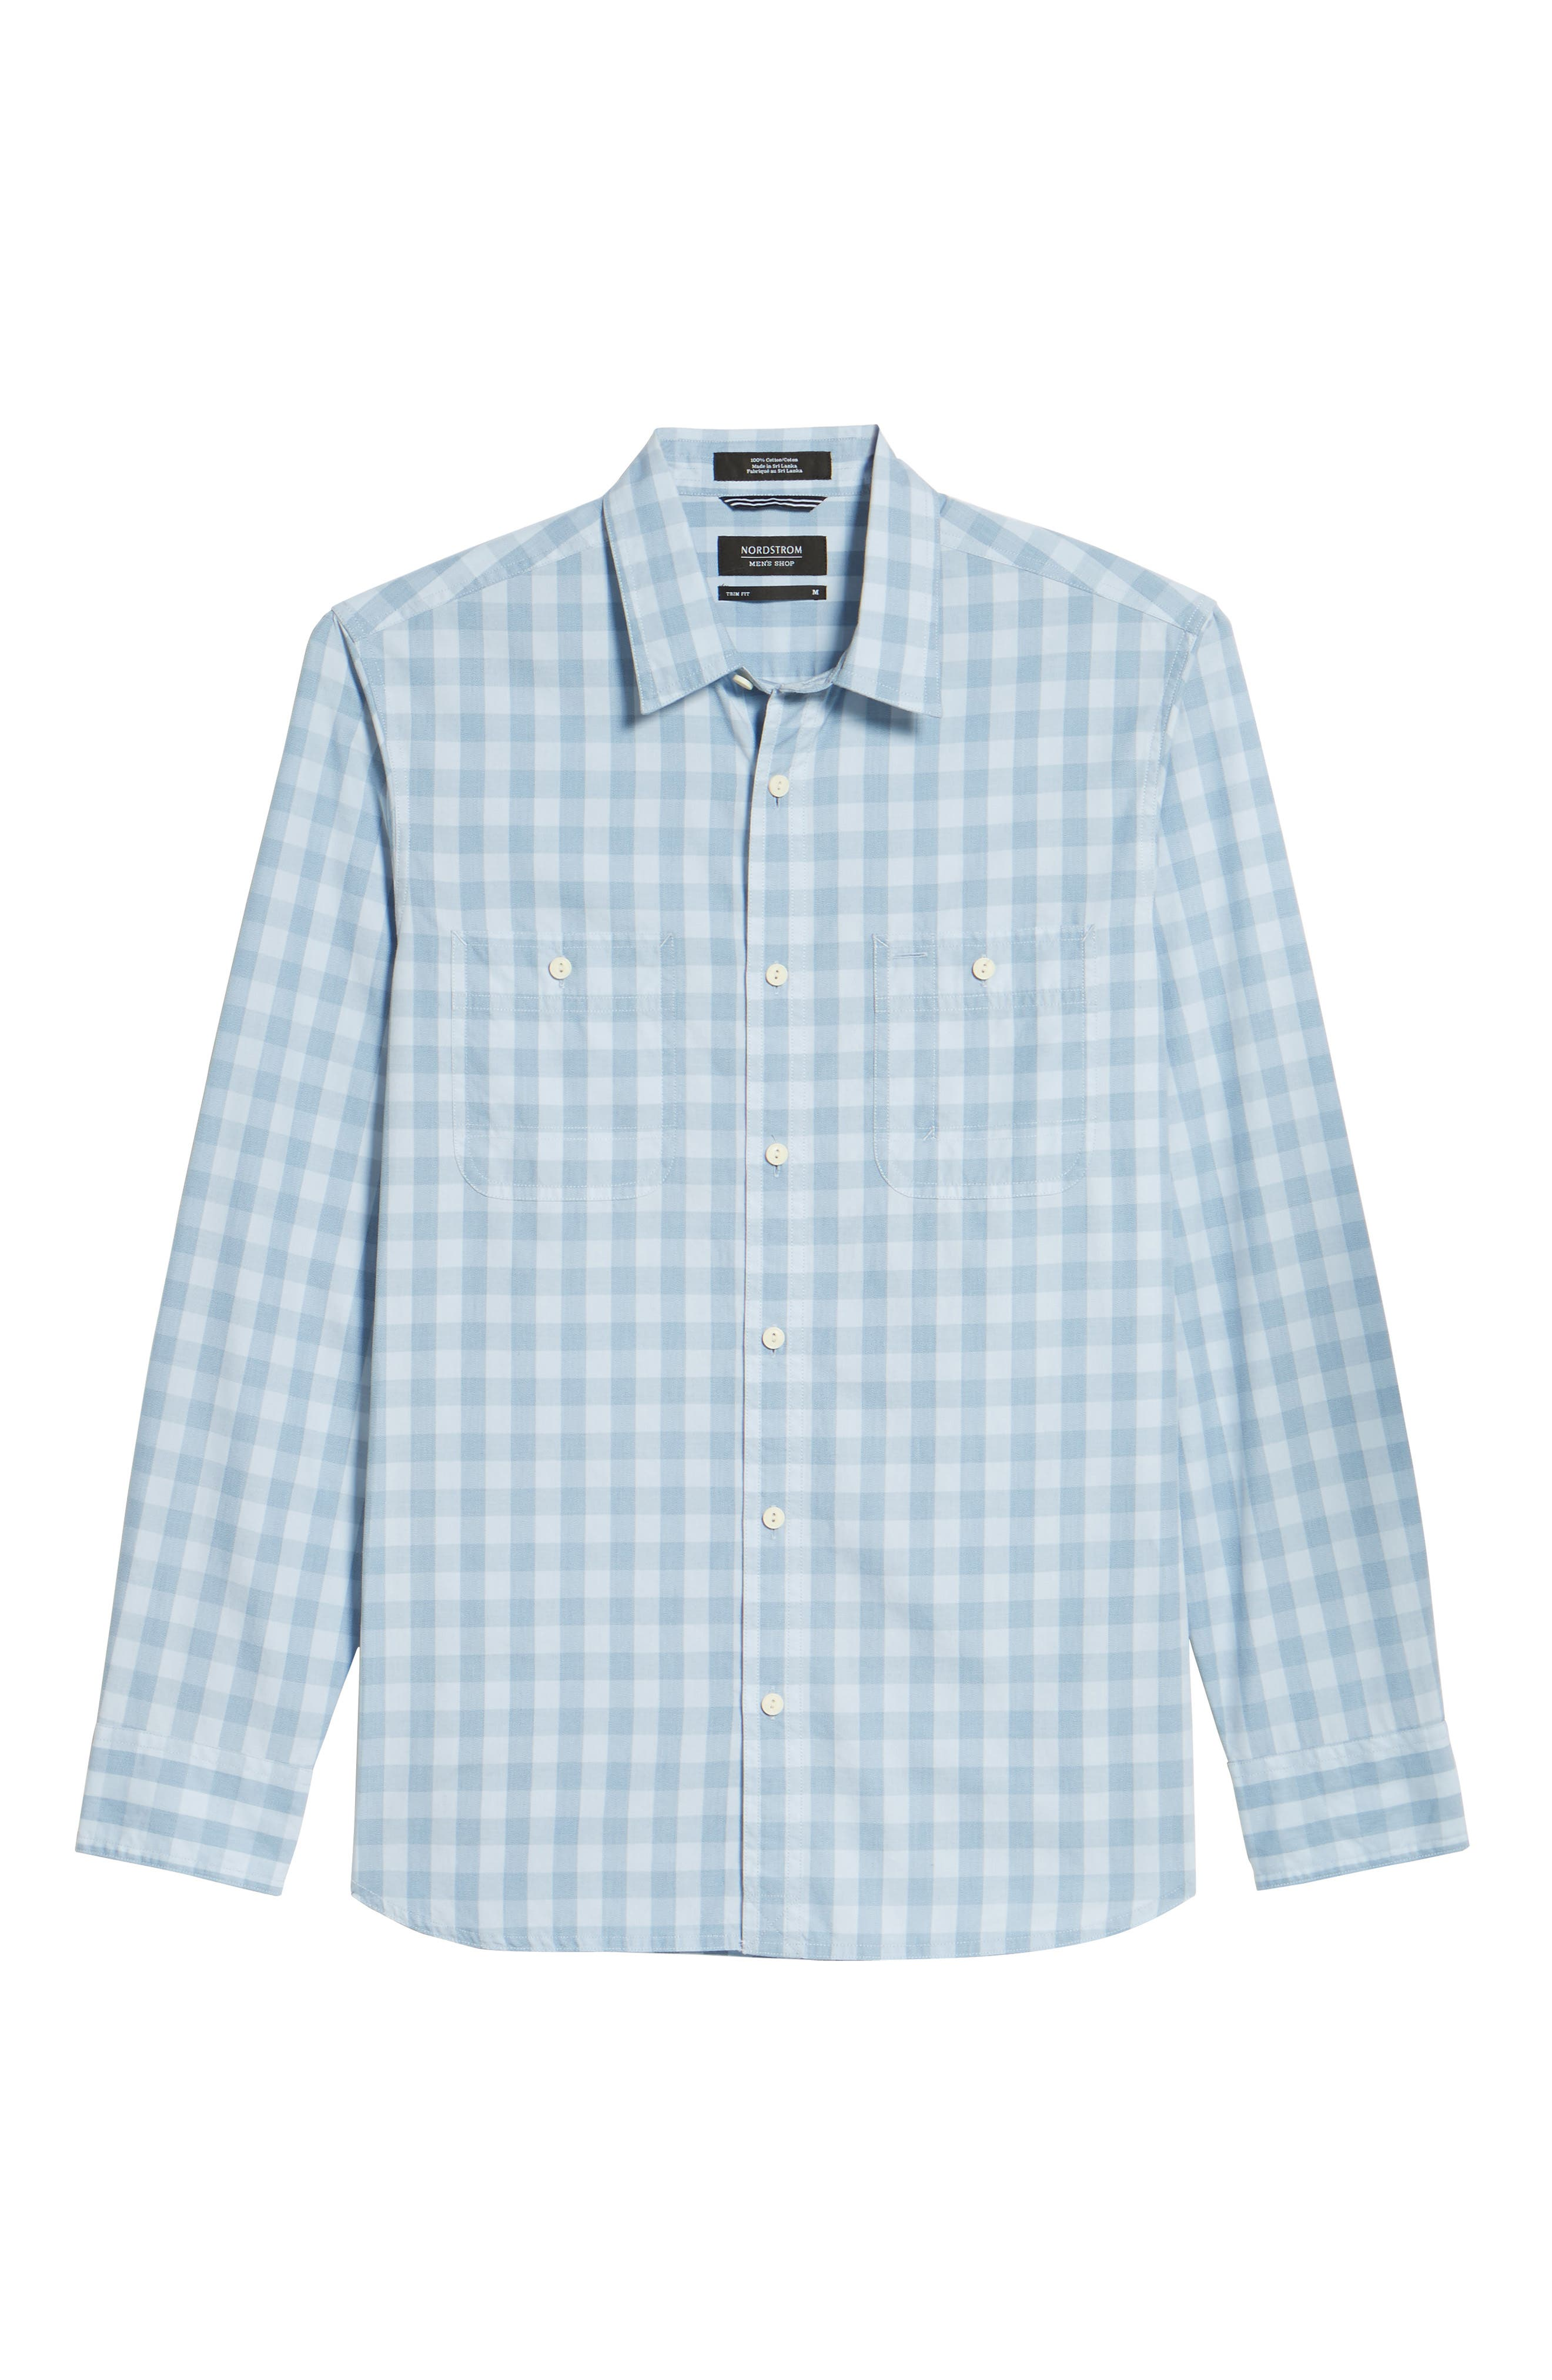 Trim Fit Washed Check Workwear Shirt,                             Alternate thumbnail 6, color,                             Blue Cashmere Check